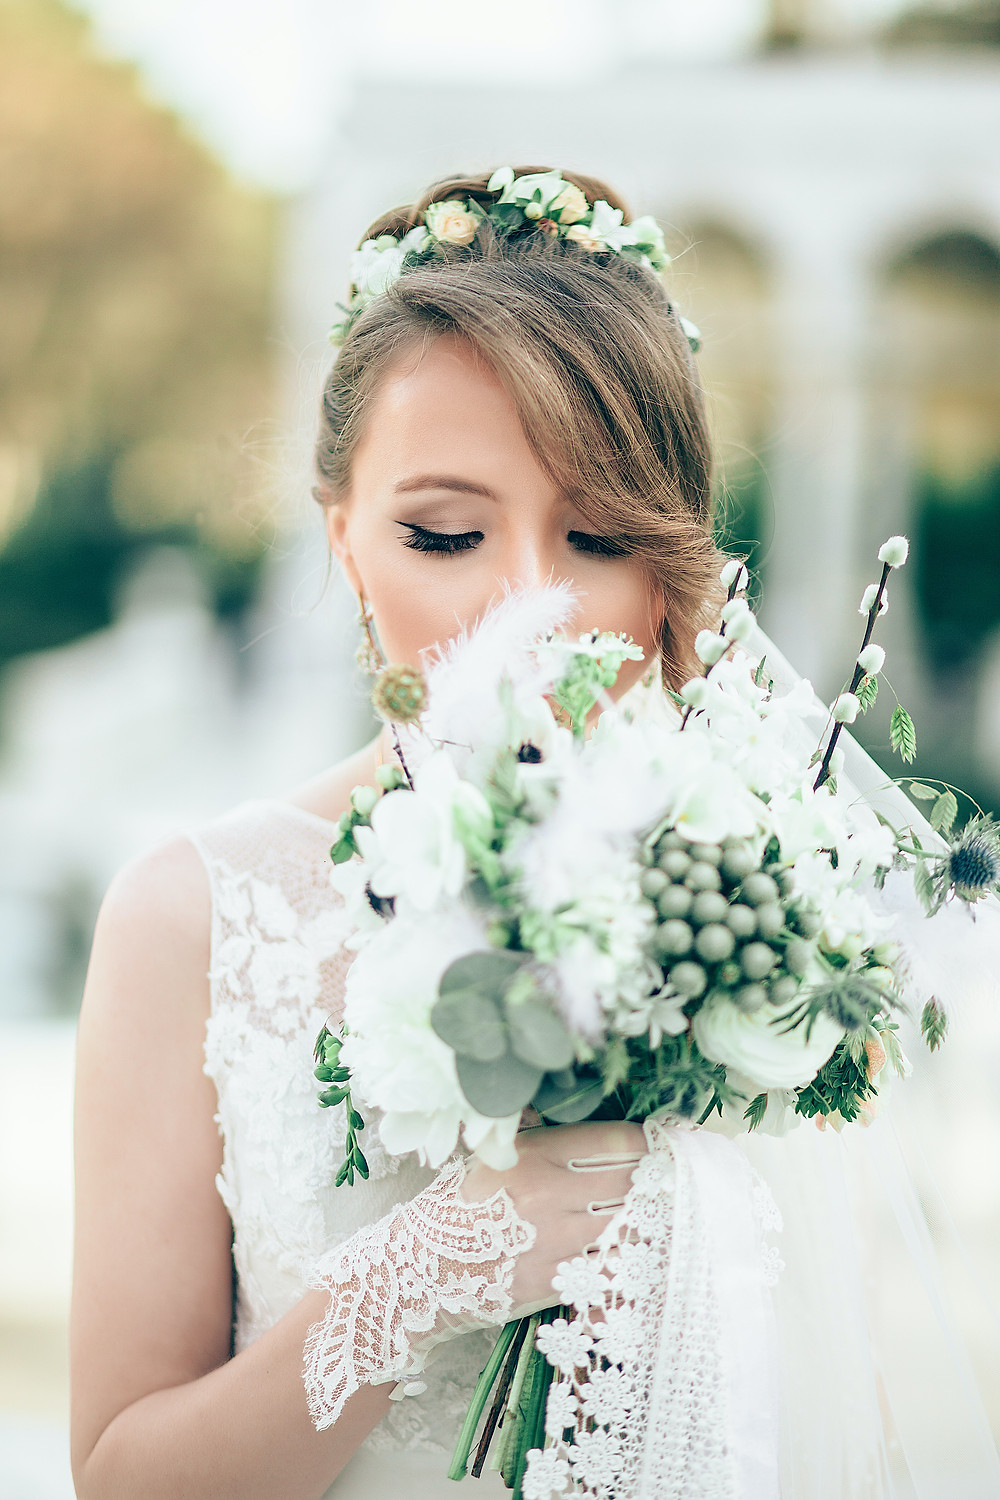 nervous bride walking down aisle with green and white bouquet